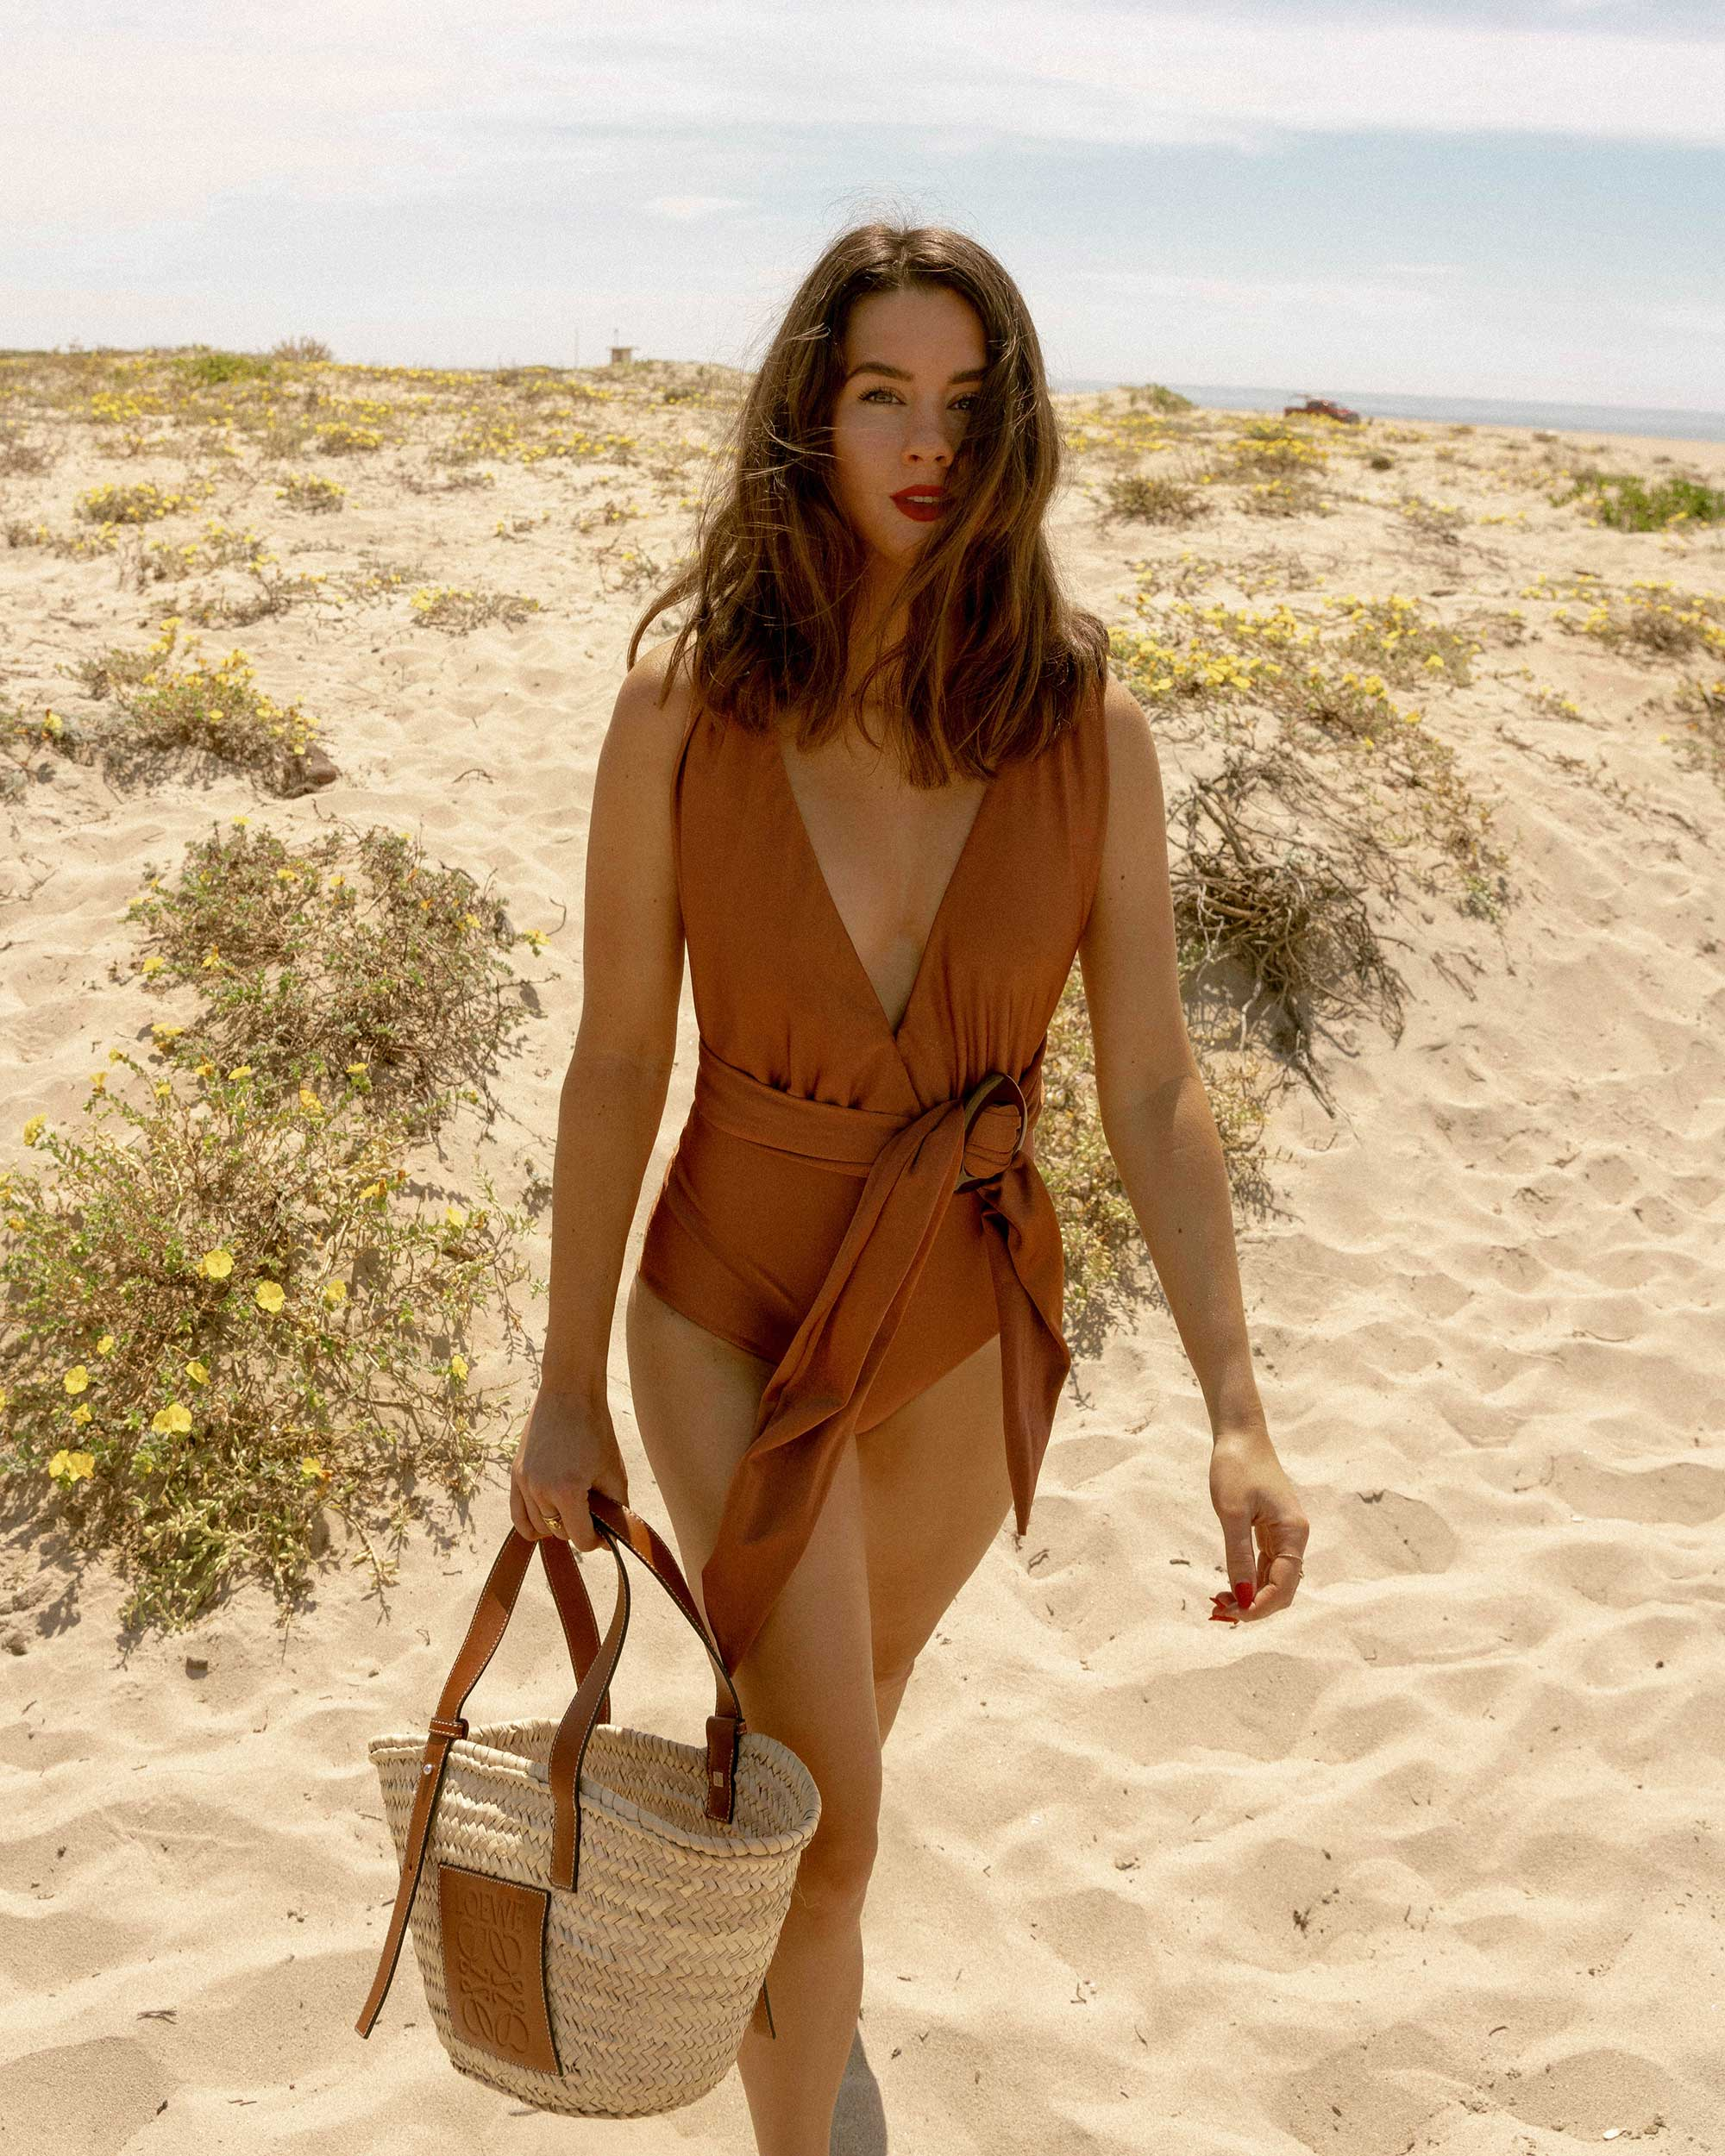 Sarah Butler of Sarah Styles Seattle wears Patbo solid brown belted swimsuit and Loewe Small Raffia Basket Tote Bag for Stylish one-piece swimsuit to wear to the beach | @sarahchristine -5.jpg